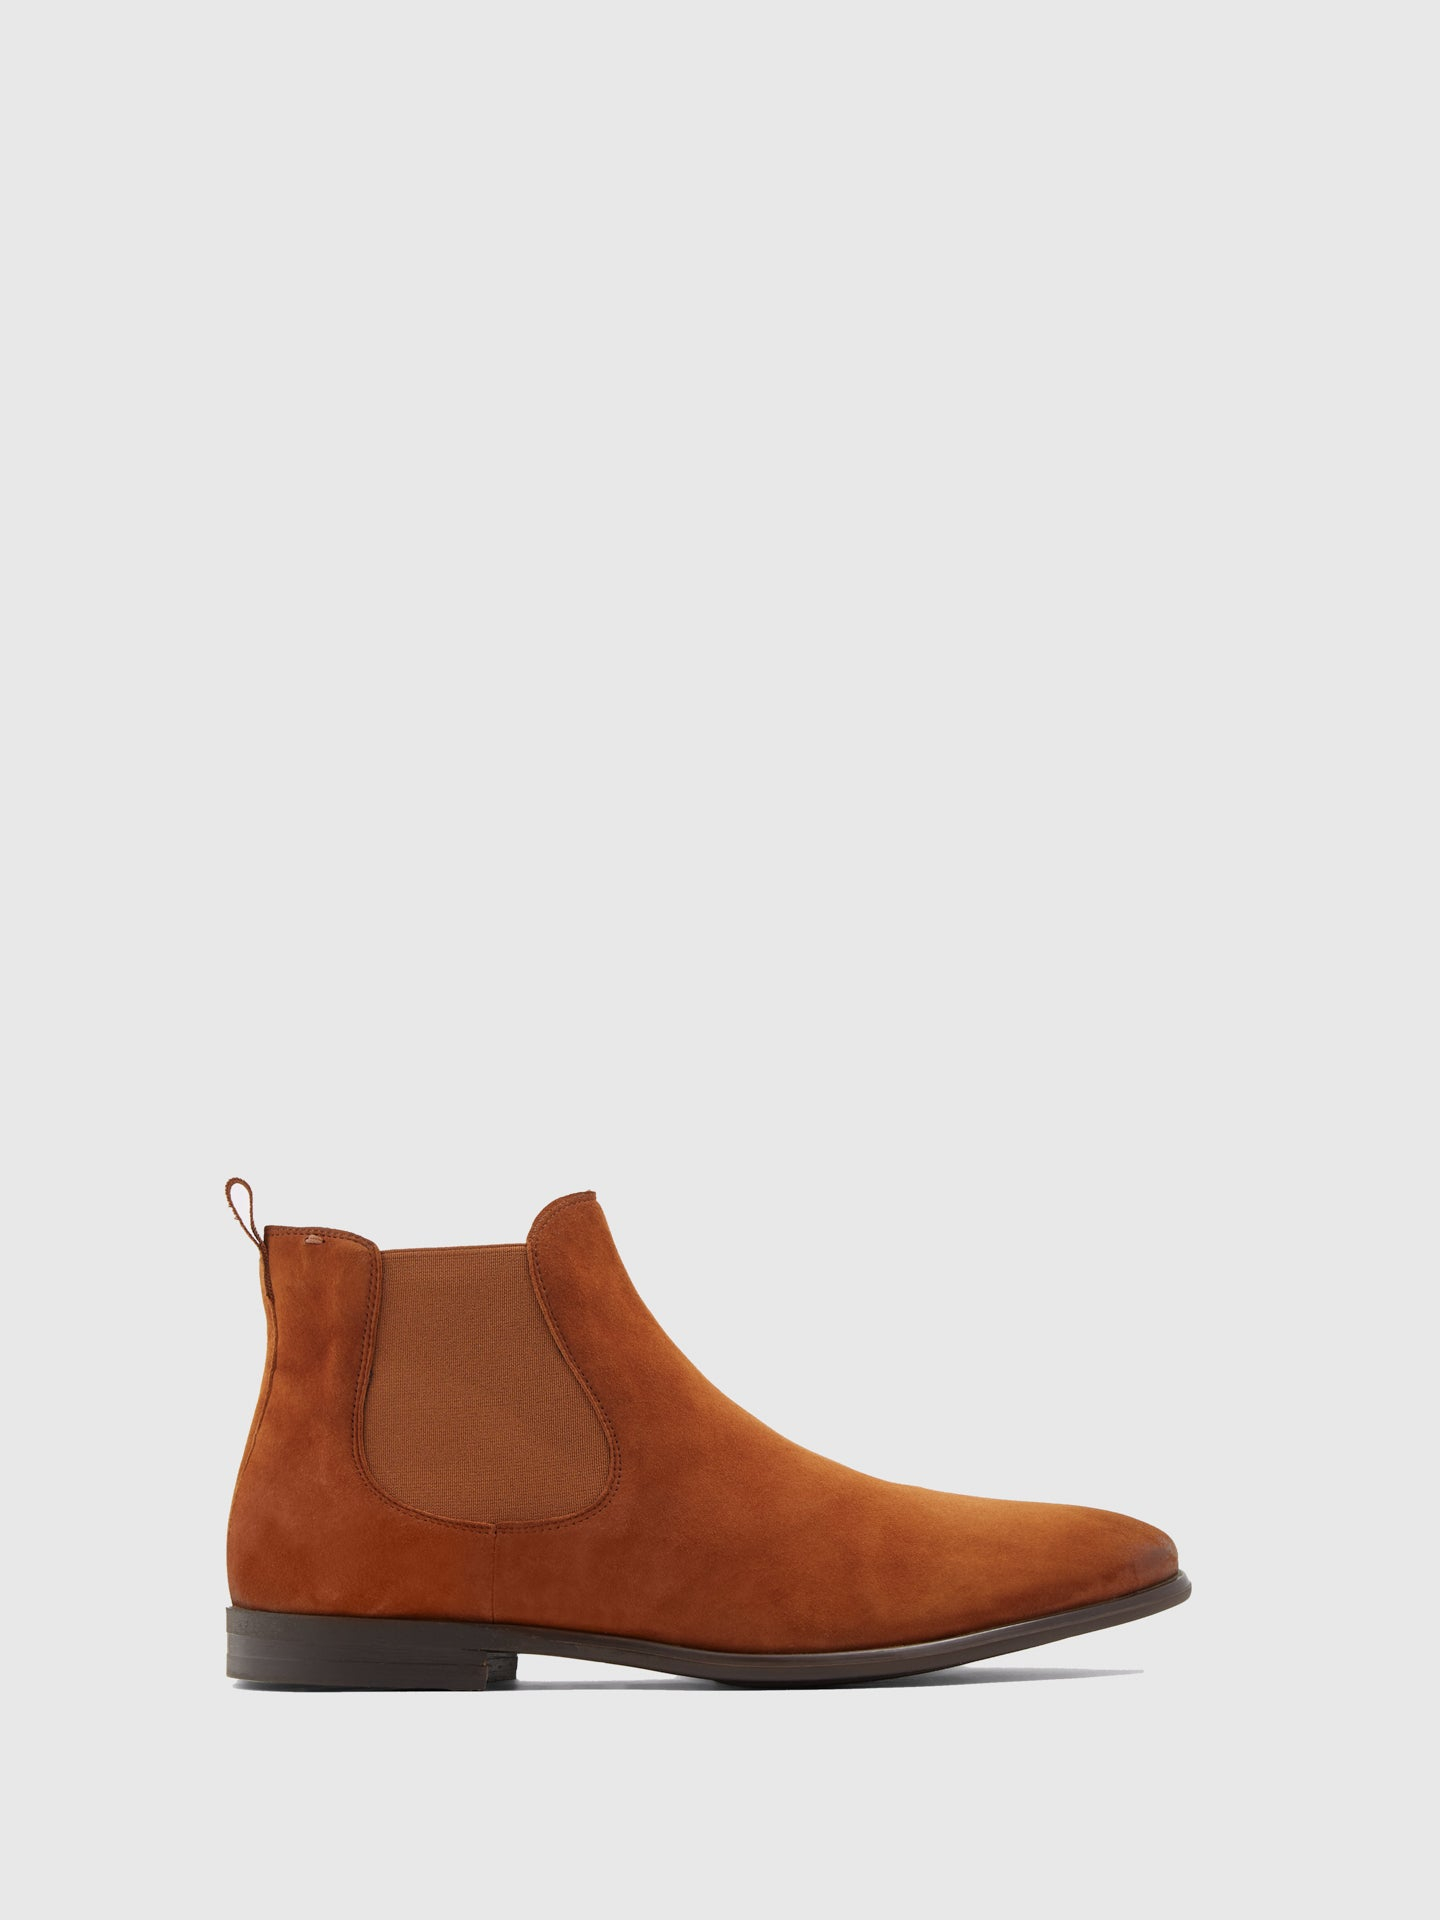 Aldo Brown Chelsea Ankle Boots